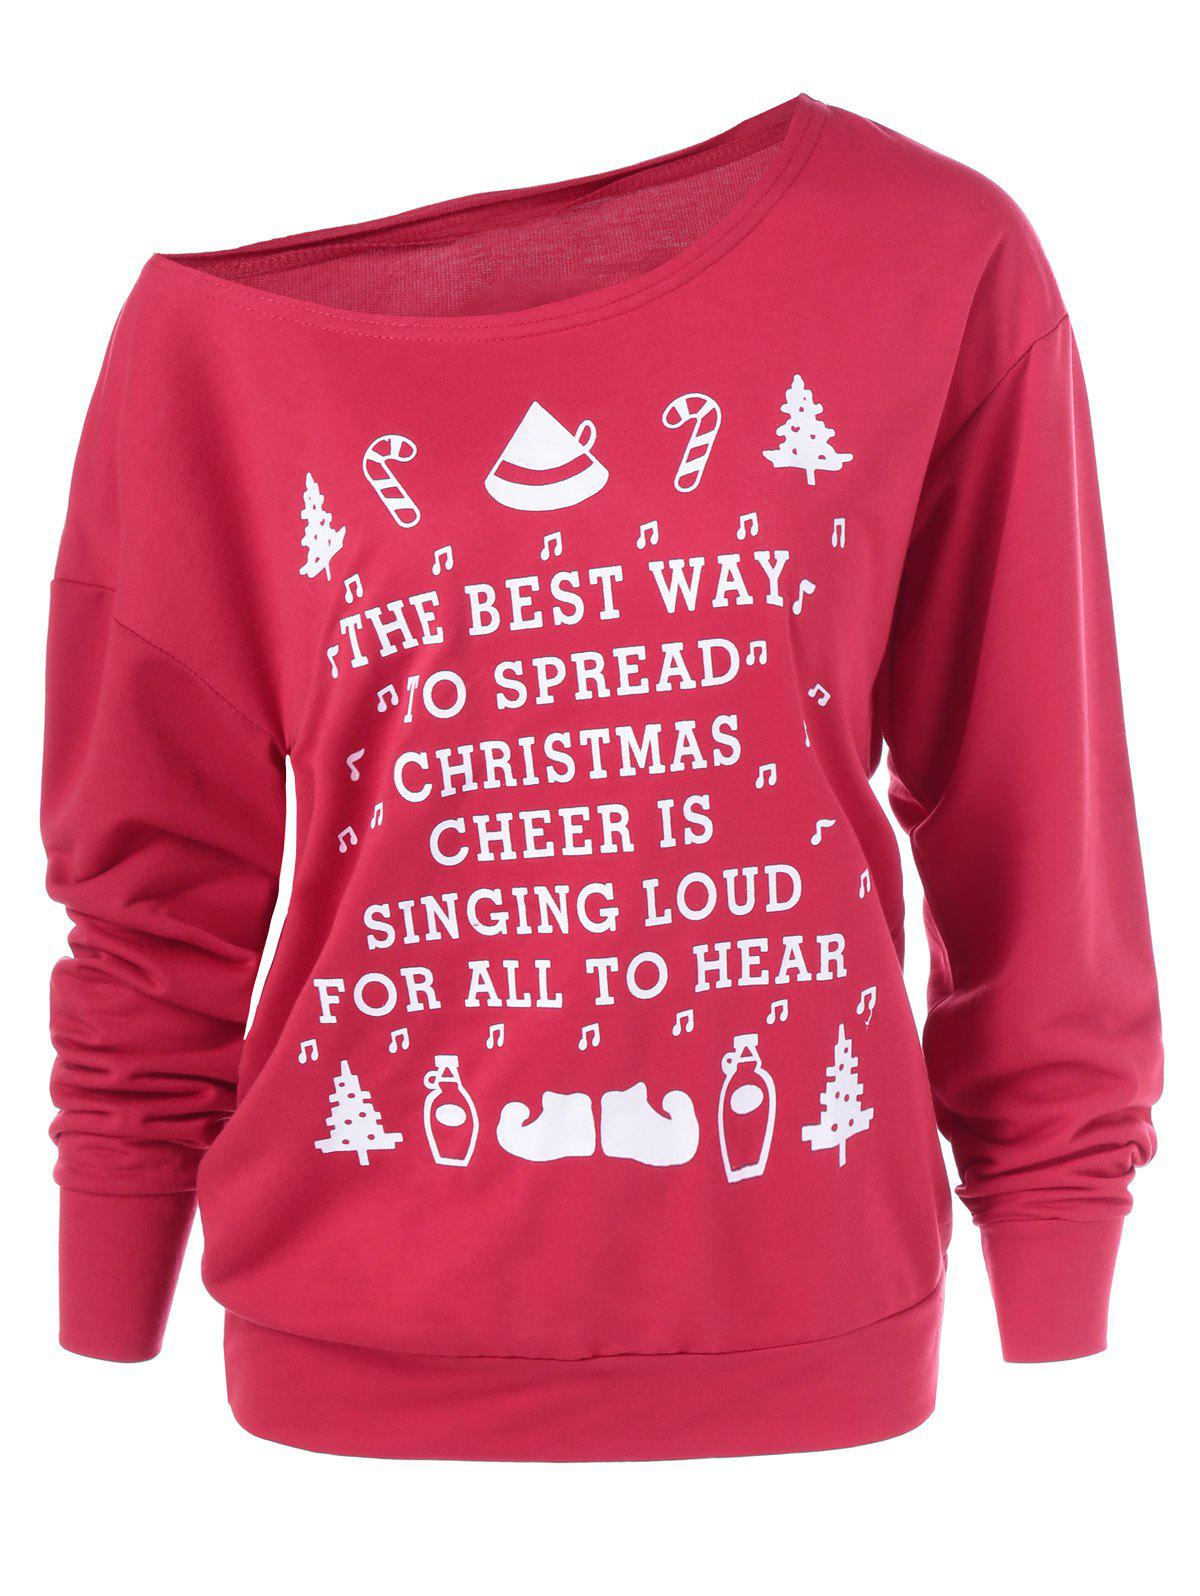 Christmas Graphic Pullover Skew Neck SweatshirtWOMEN<br><br>Size: XL; Color: RED; Material: Spandex; Shirt Length: Regular; Sleeve Length: Full; Style: Streetwear; Pattern Style: Letter; Season: Fall,Spring,Winter; Weight: 0.400kg; Package Contents: 1 x Sweatshirt;